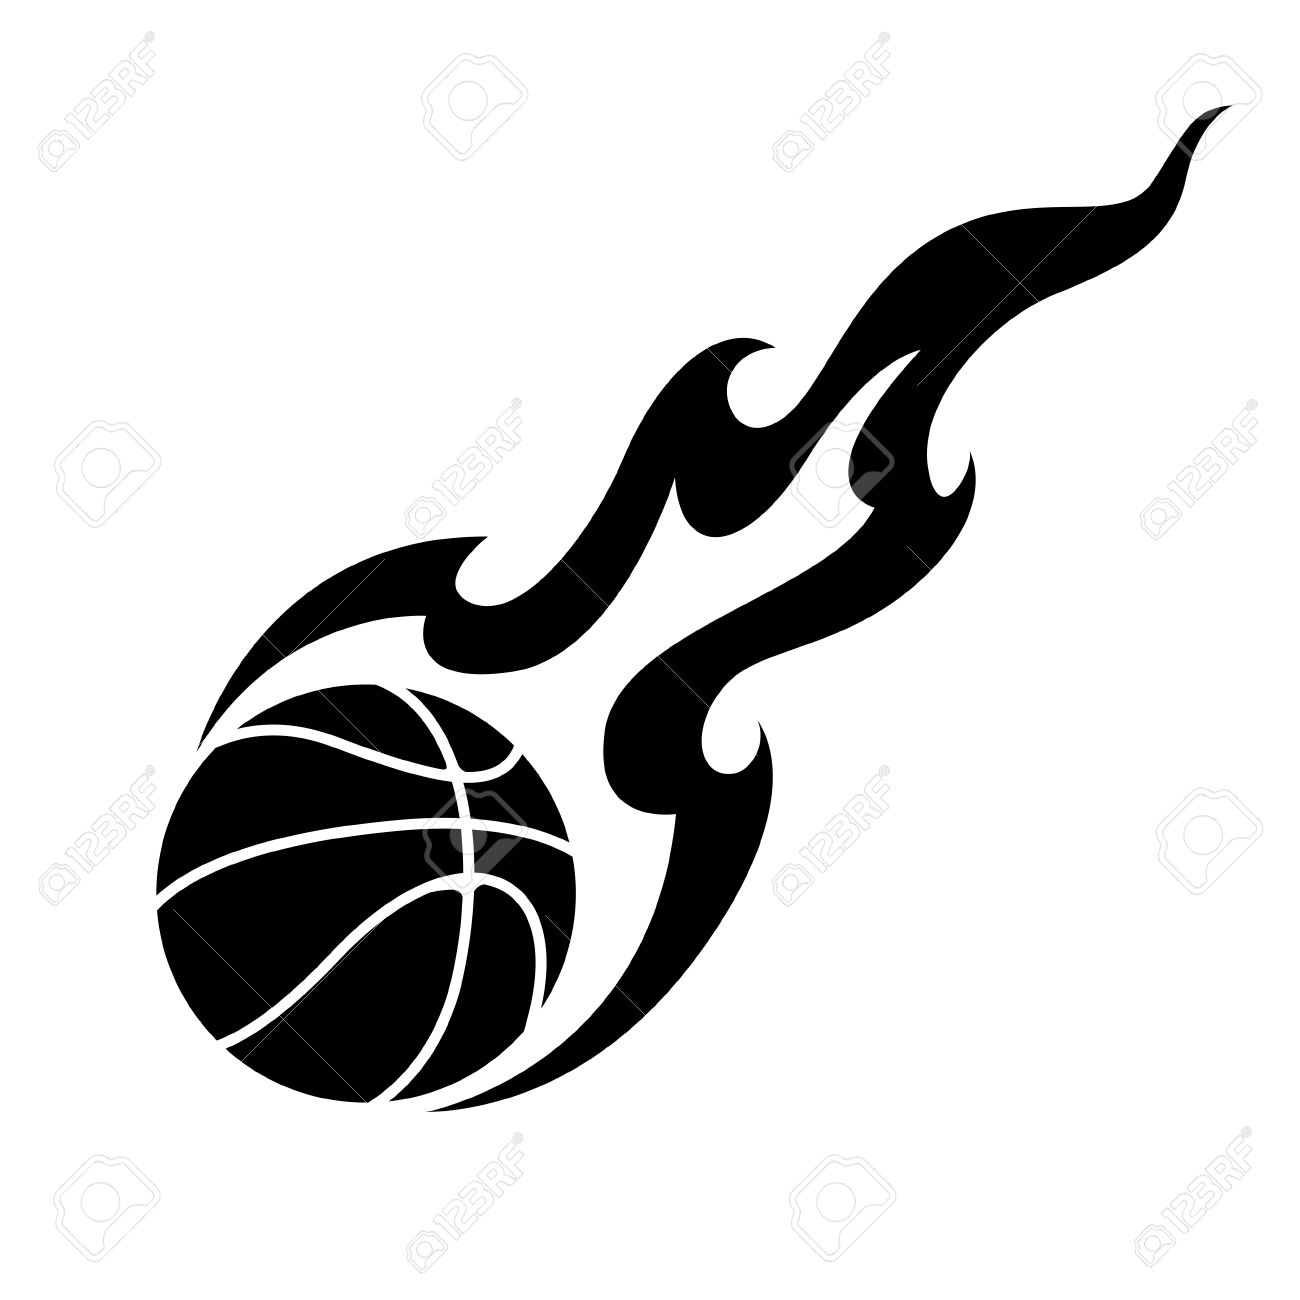 Basketball Fire Cliparts Free Download Clip Art.